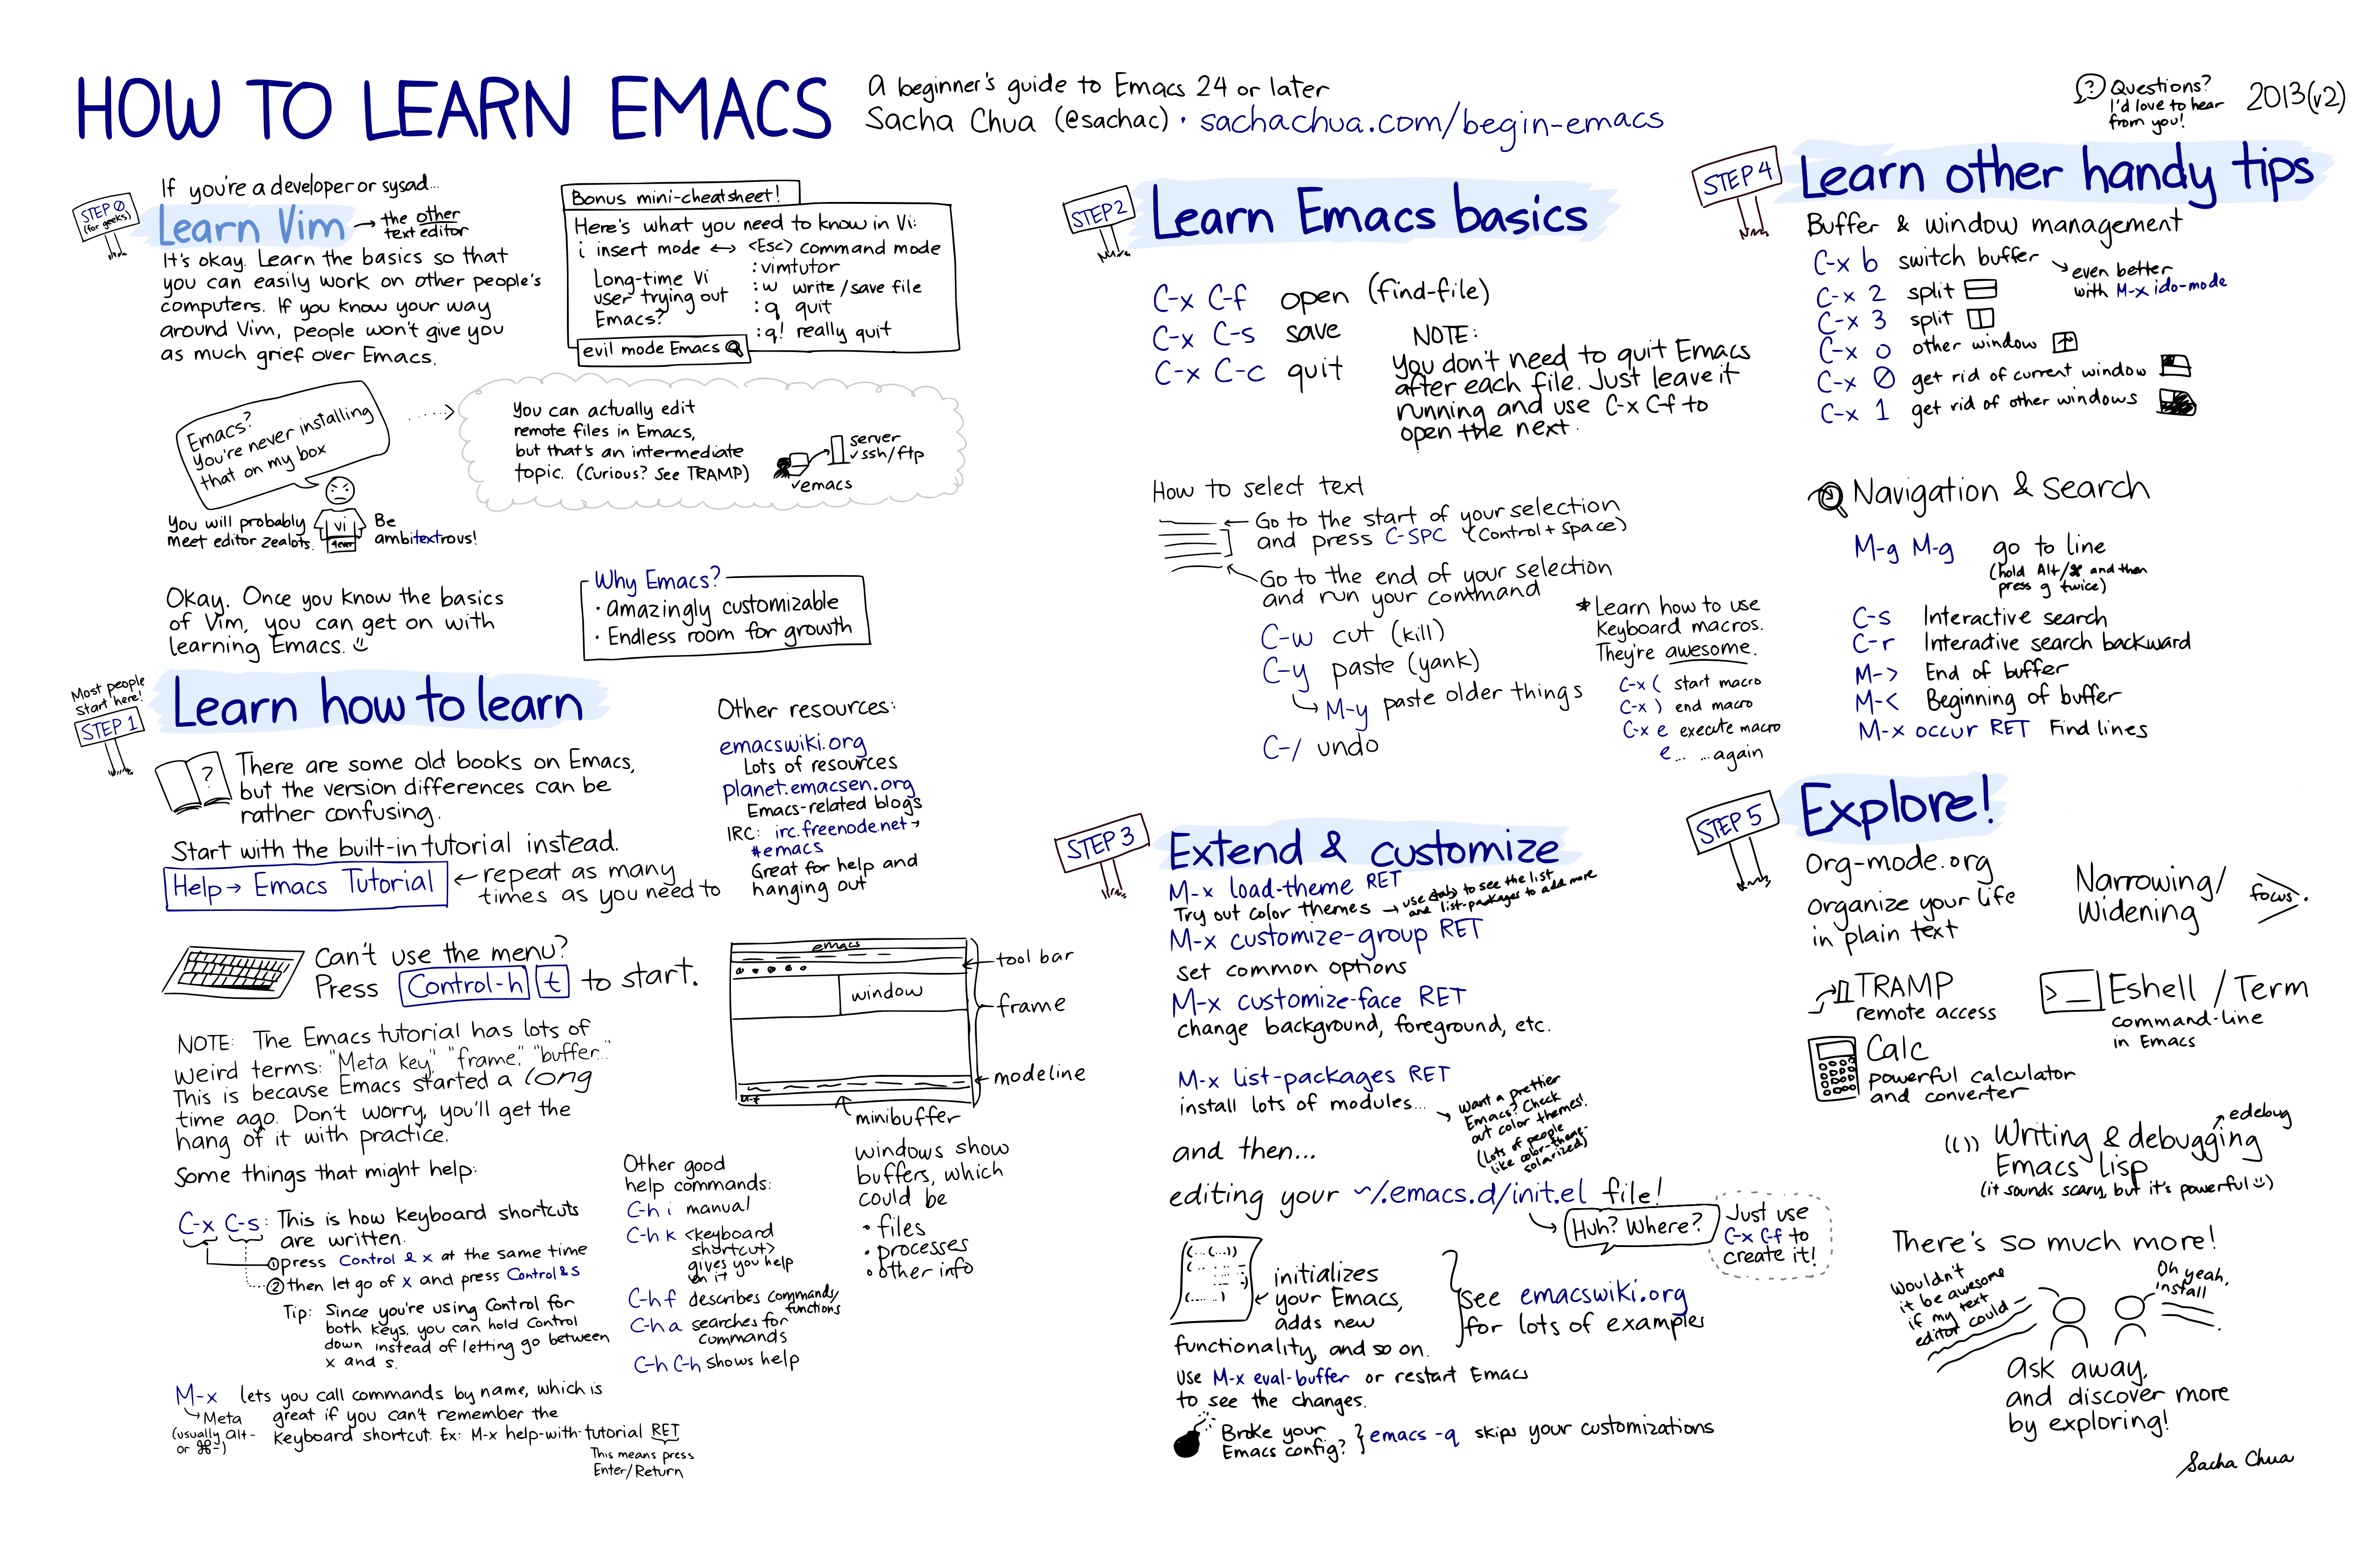 How to Learn Emacs: A Hand-drawn One-pager for Beginners / A